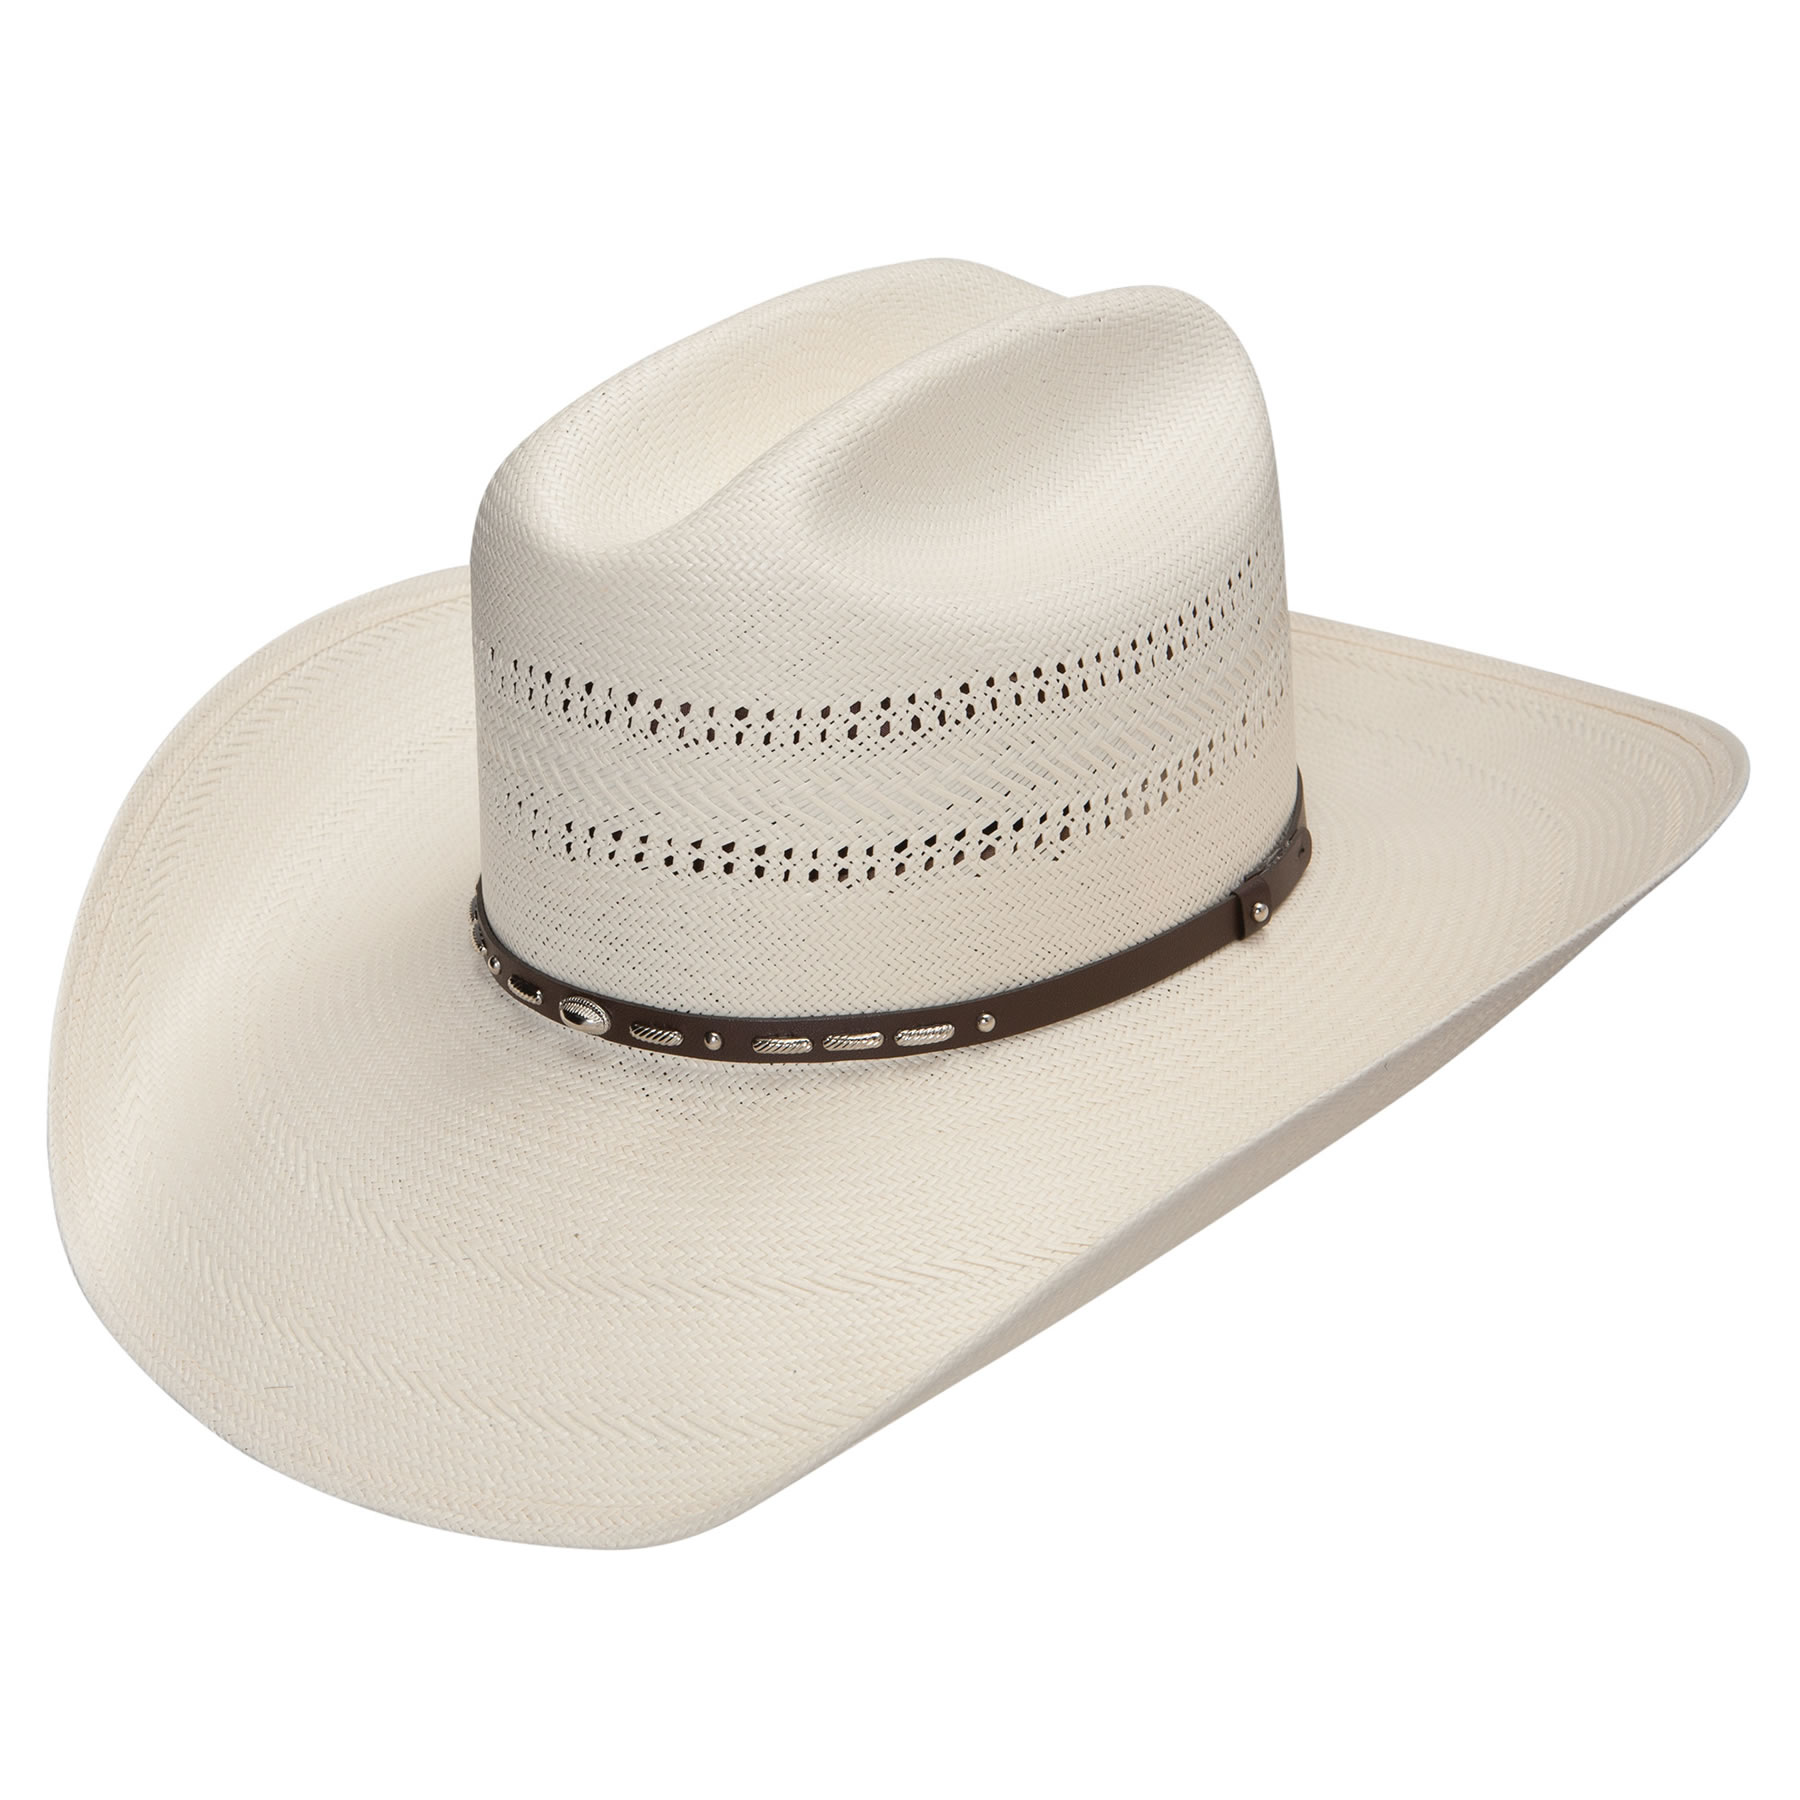 3094d4e7c56b8e ... Stetson Straw Cowboy Hat: Stetson Gaines 10X Straw Hat, 10X Collection